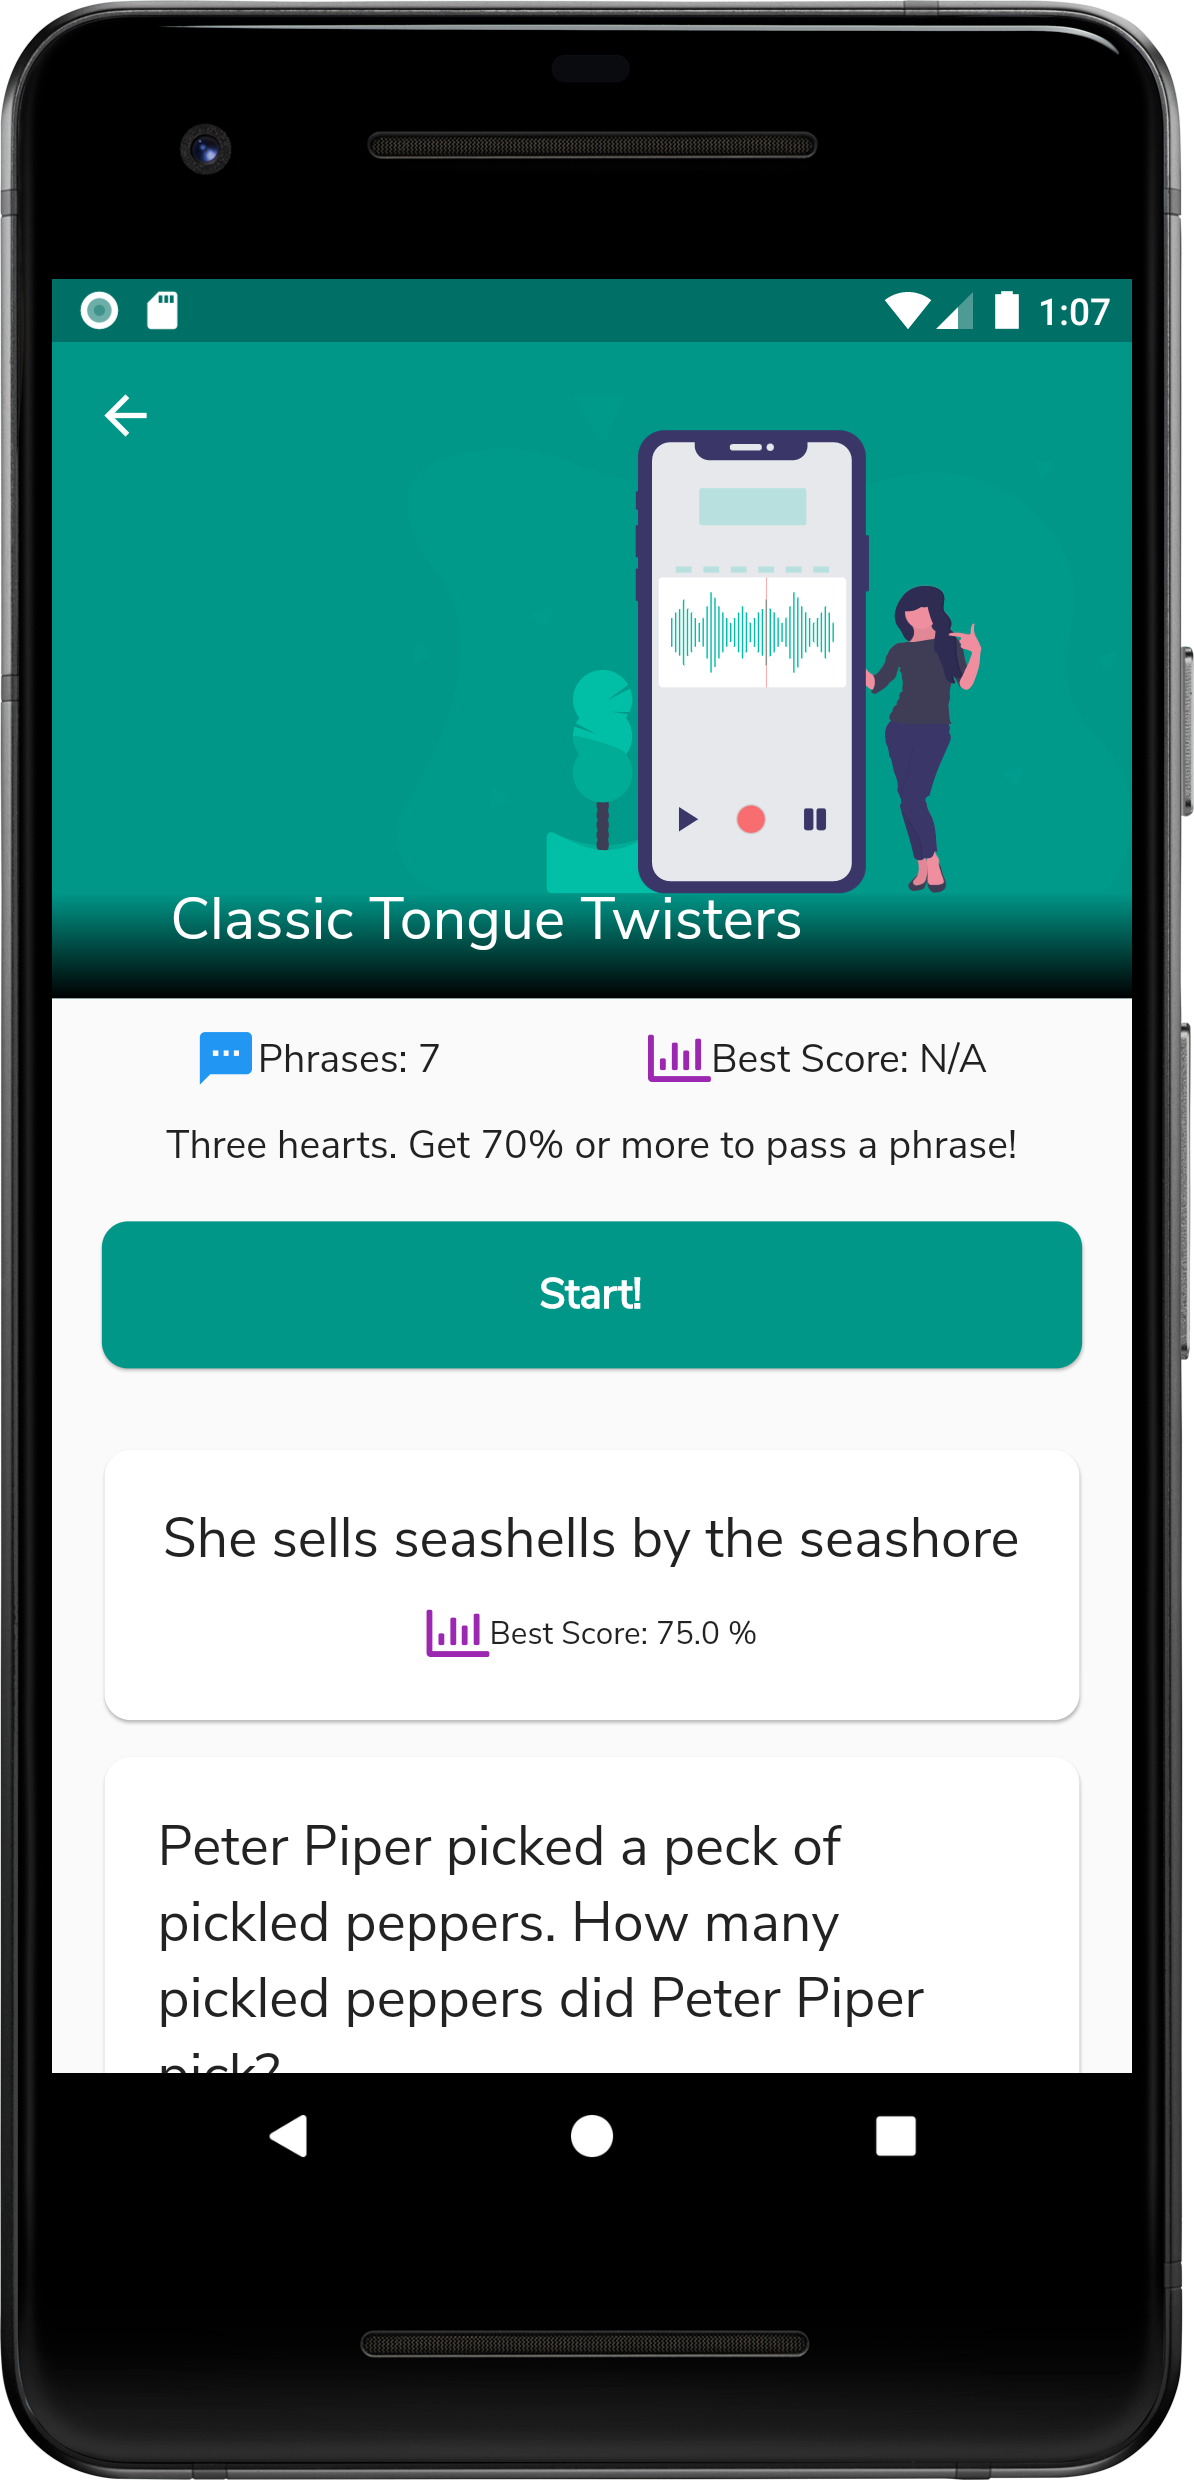 Twistify – An App with Tongue Twisters!